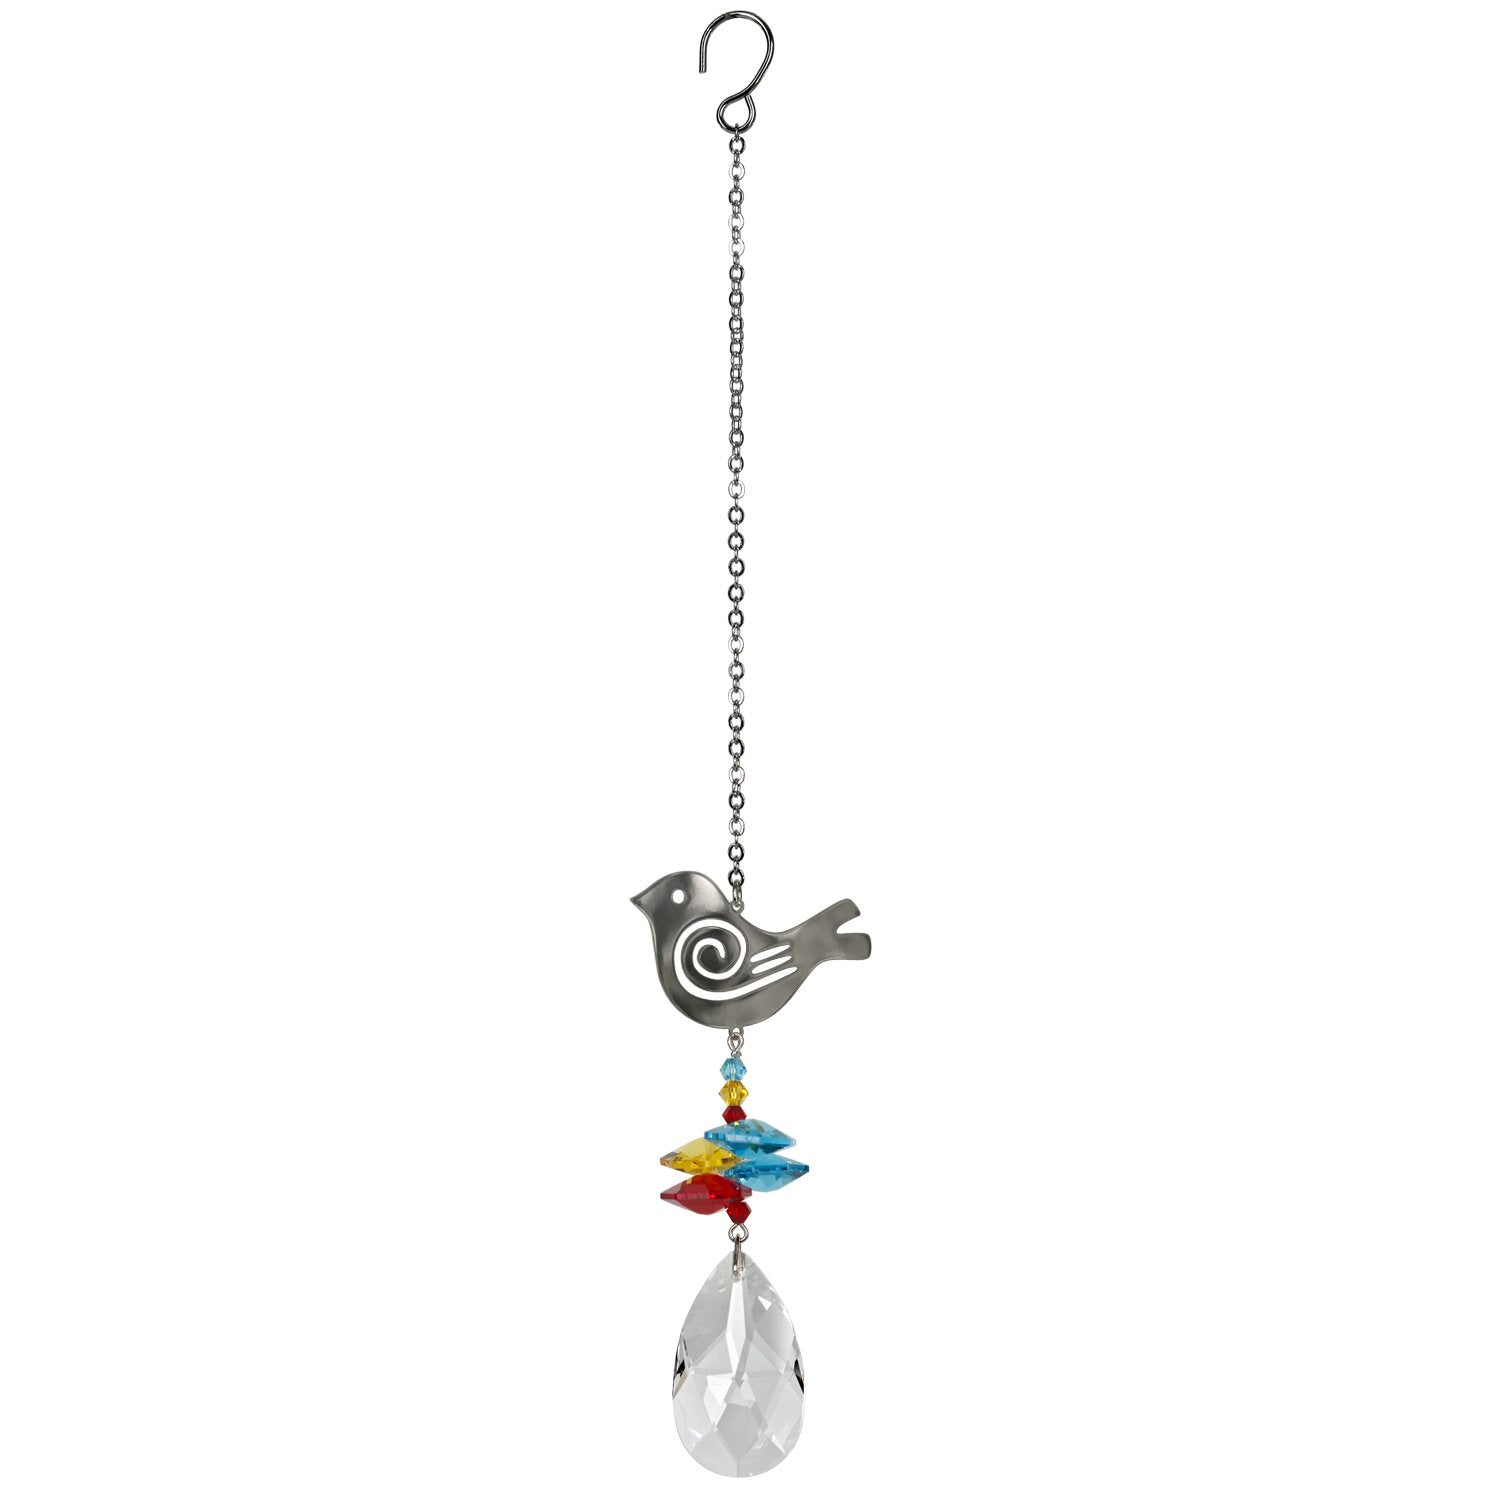 Crystal Fantasy Suncatcher - Bird full product image